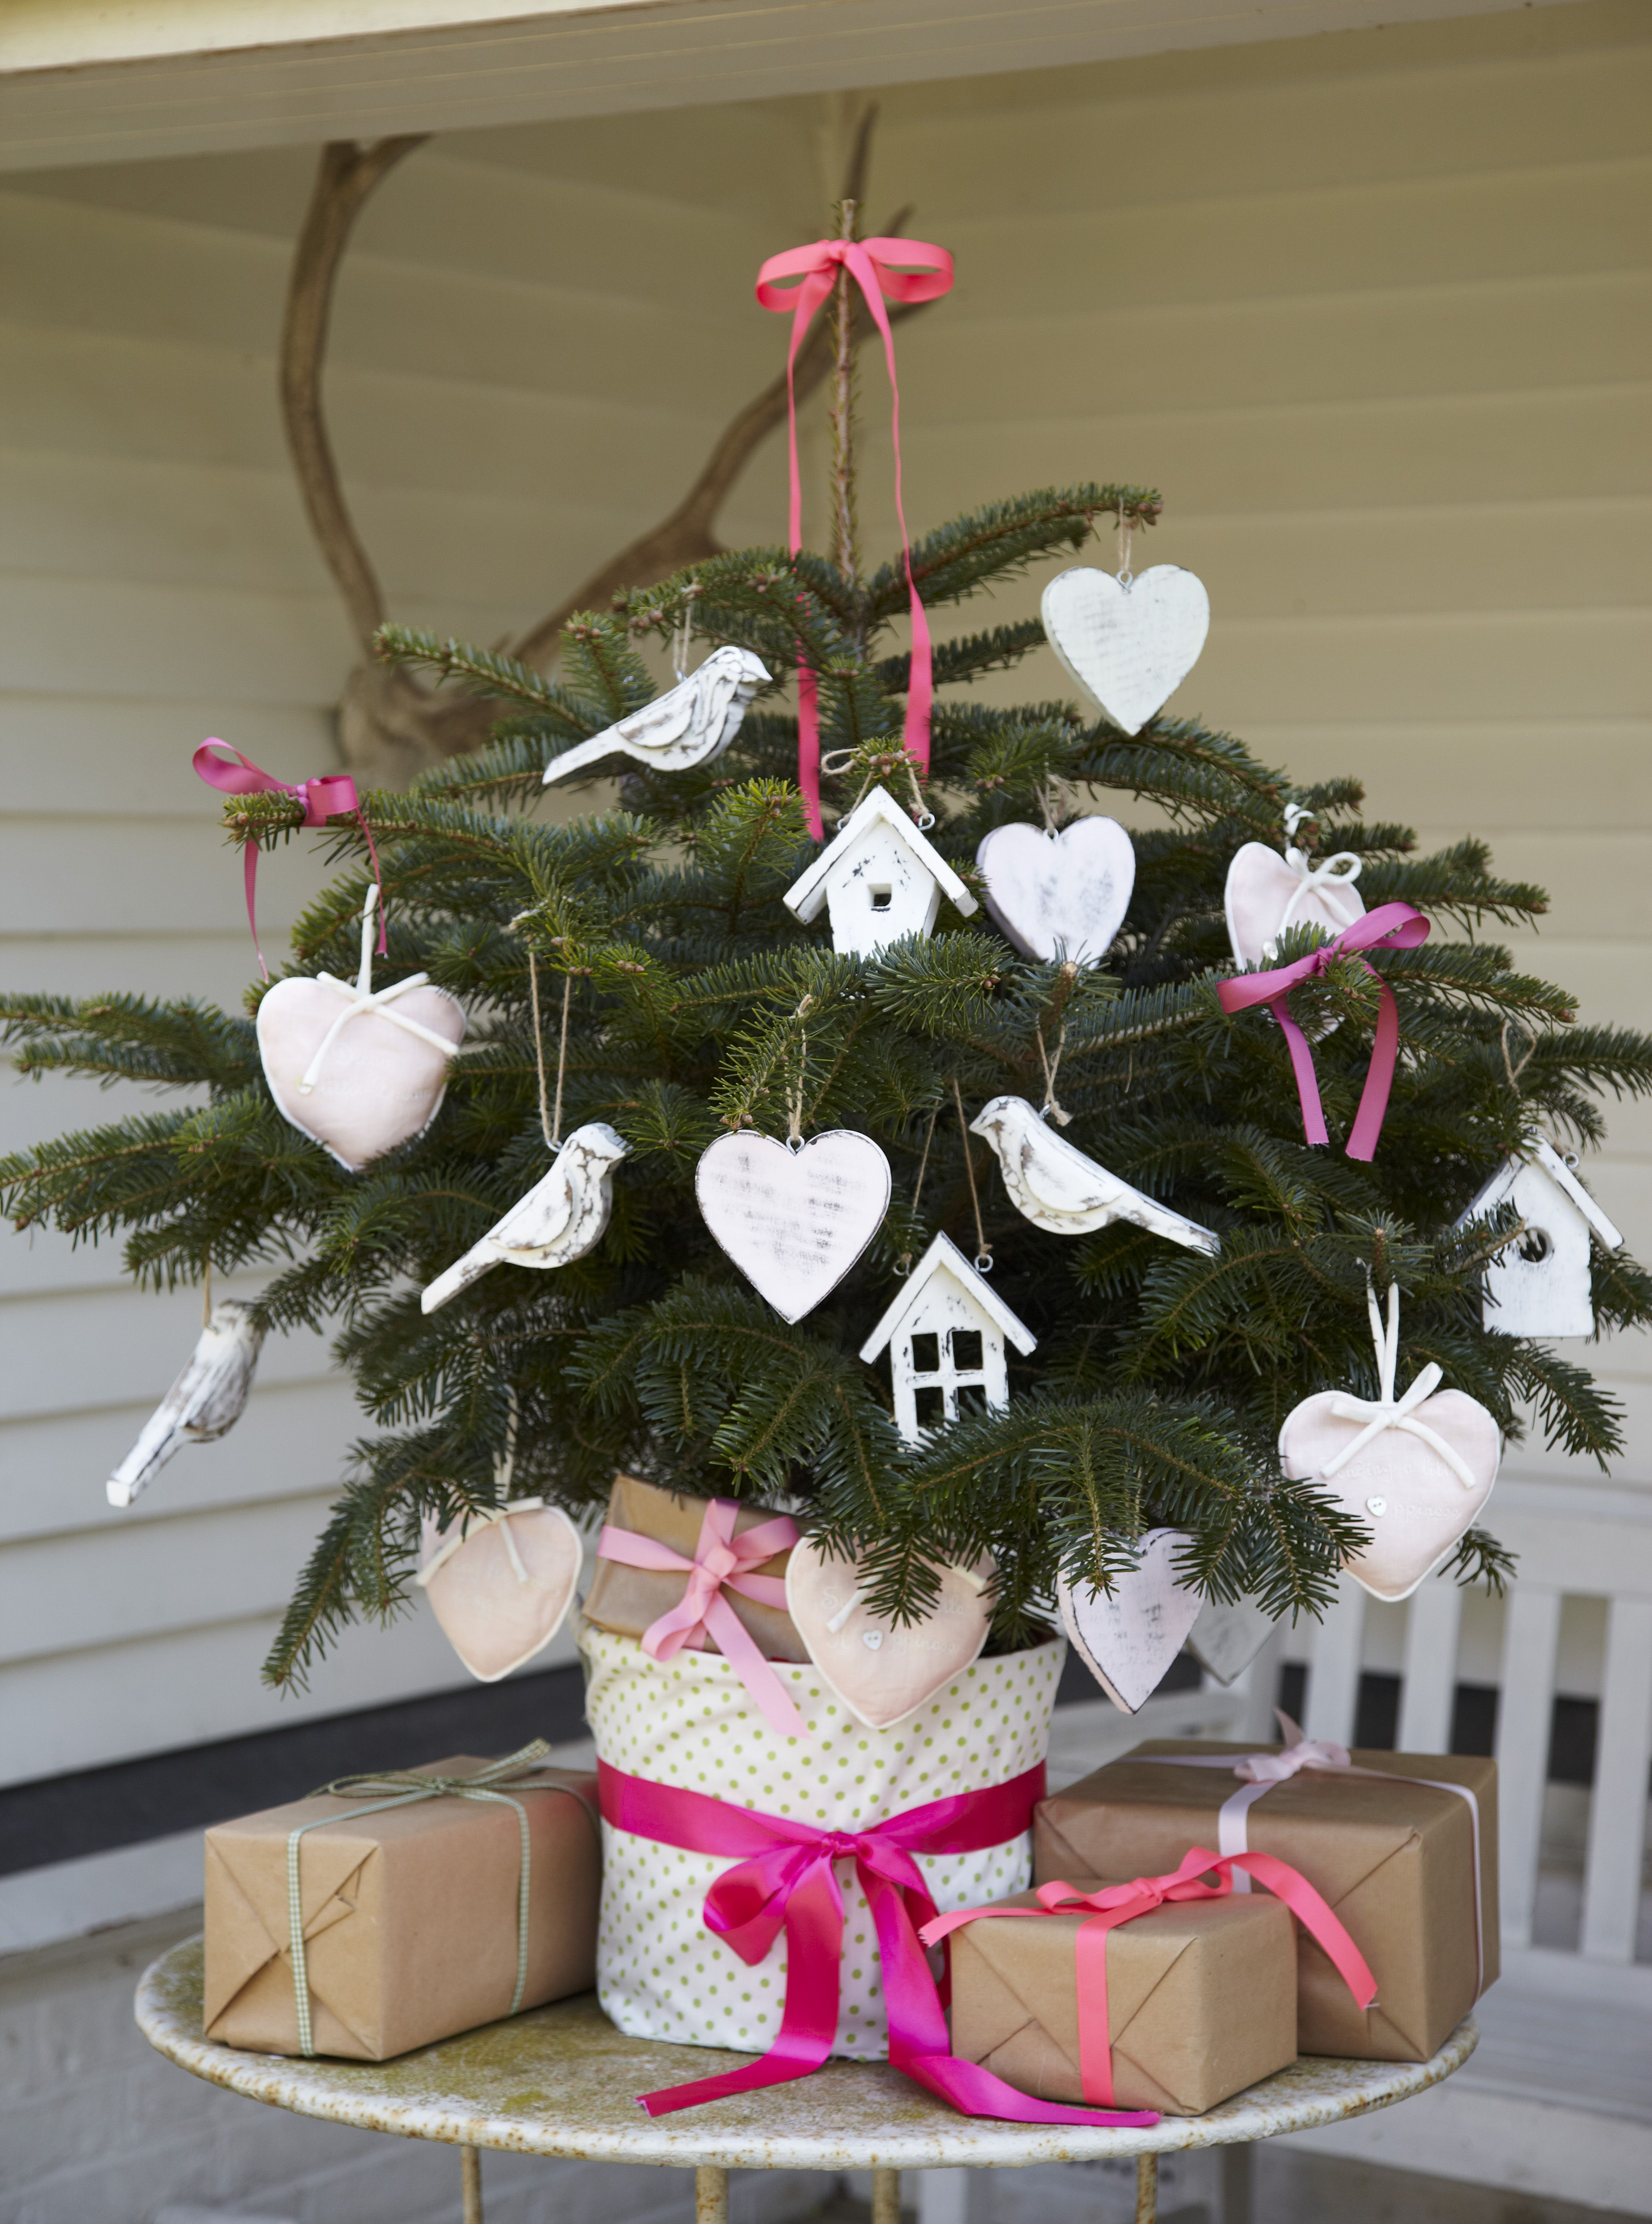 A girly Christmas with distressed white and soft pink decorations!